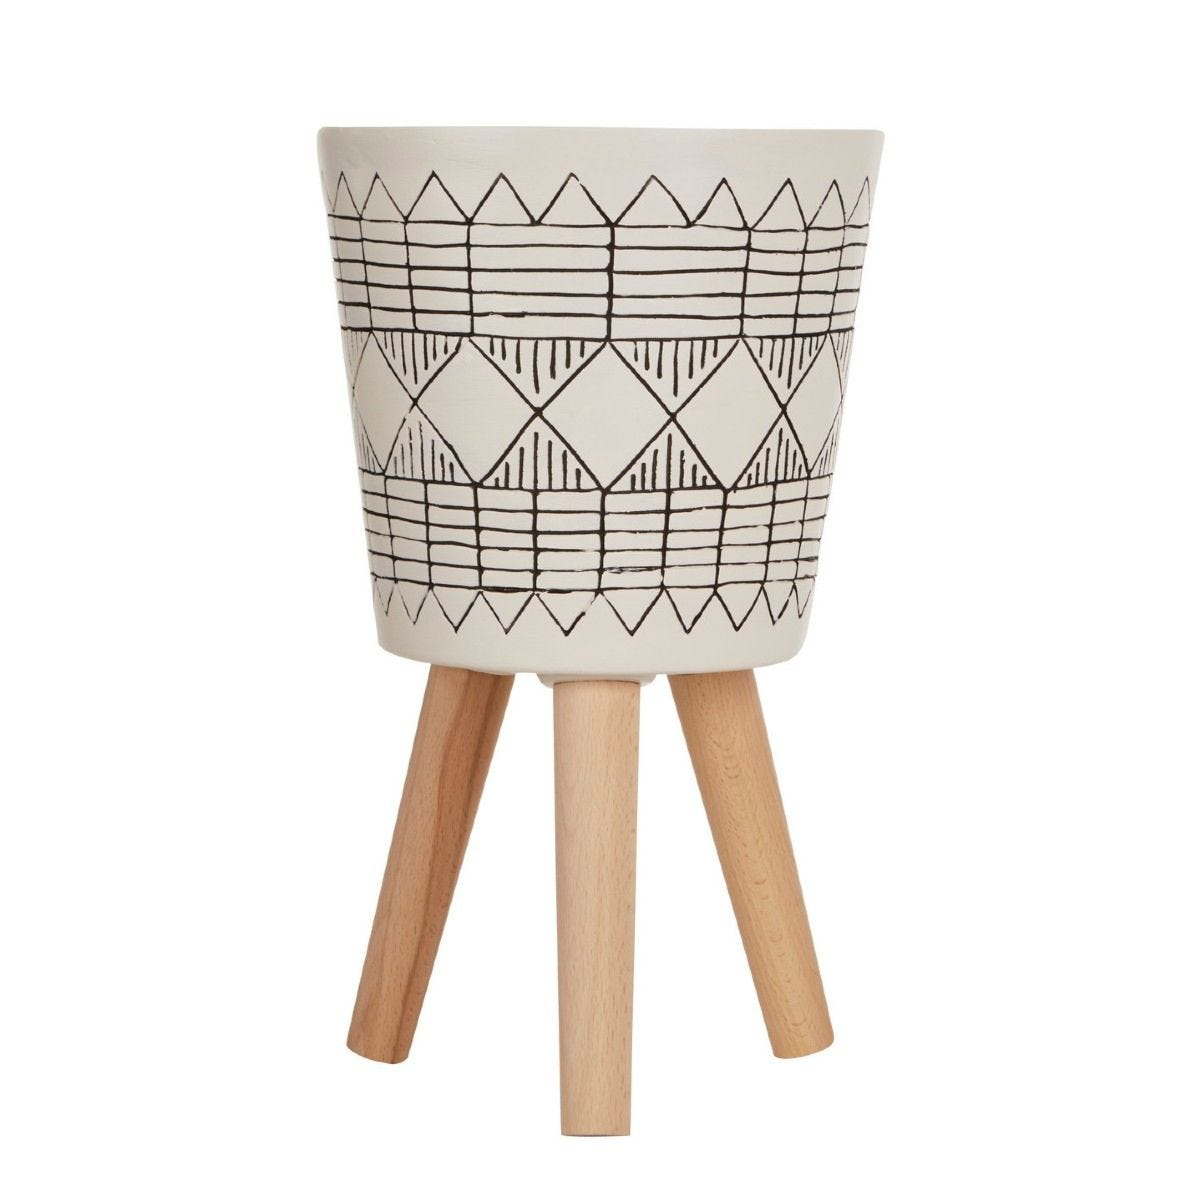 Small Planter in a White/Black Magnesia Fibreglass with Natural Beech Wood Legs